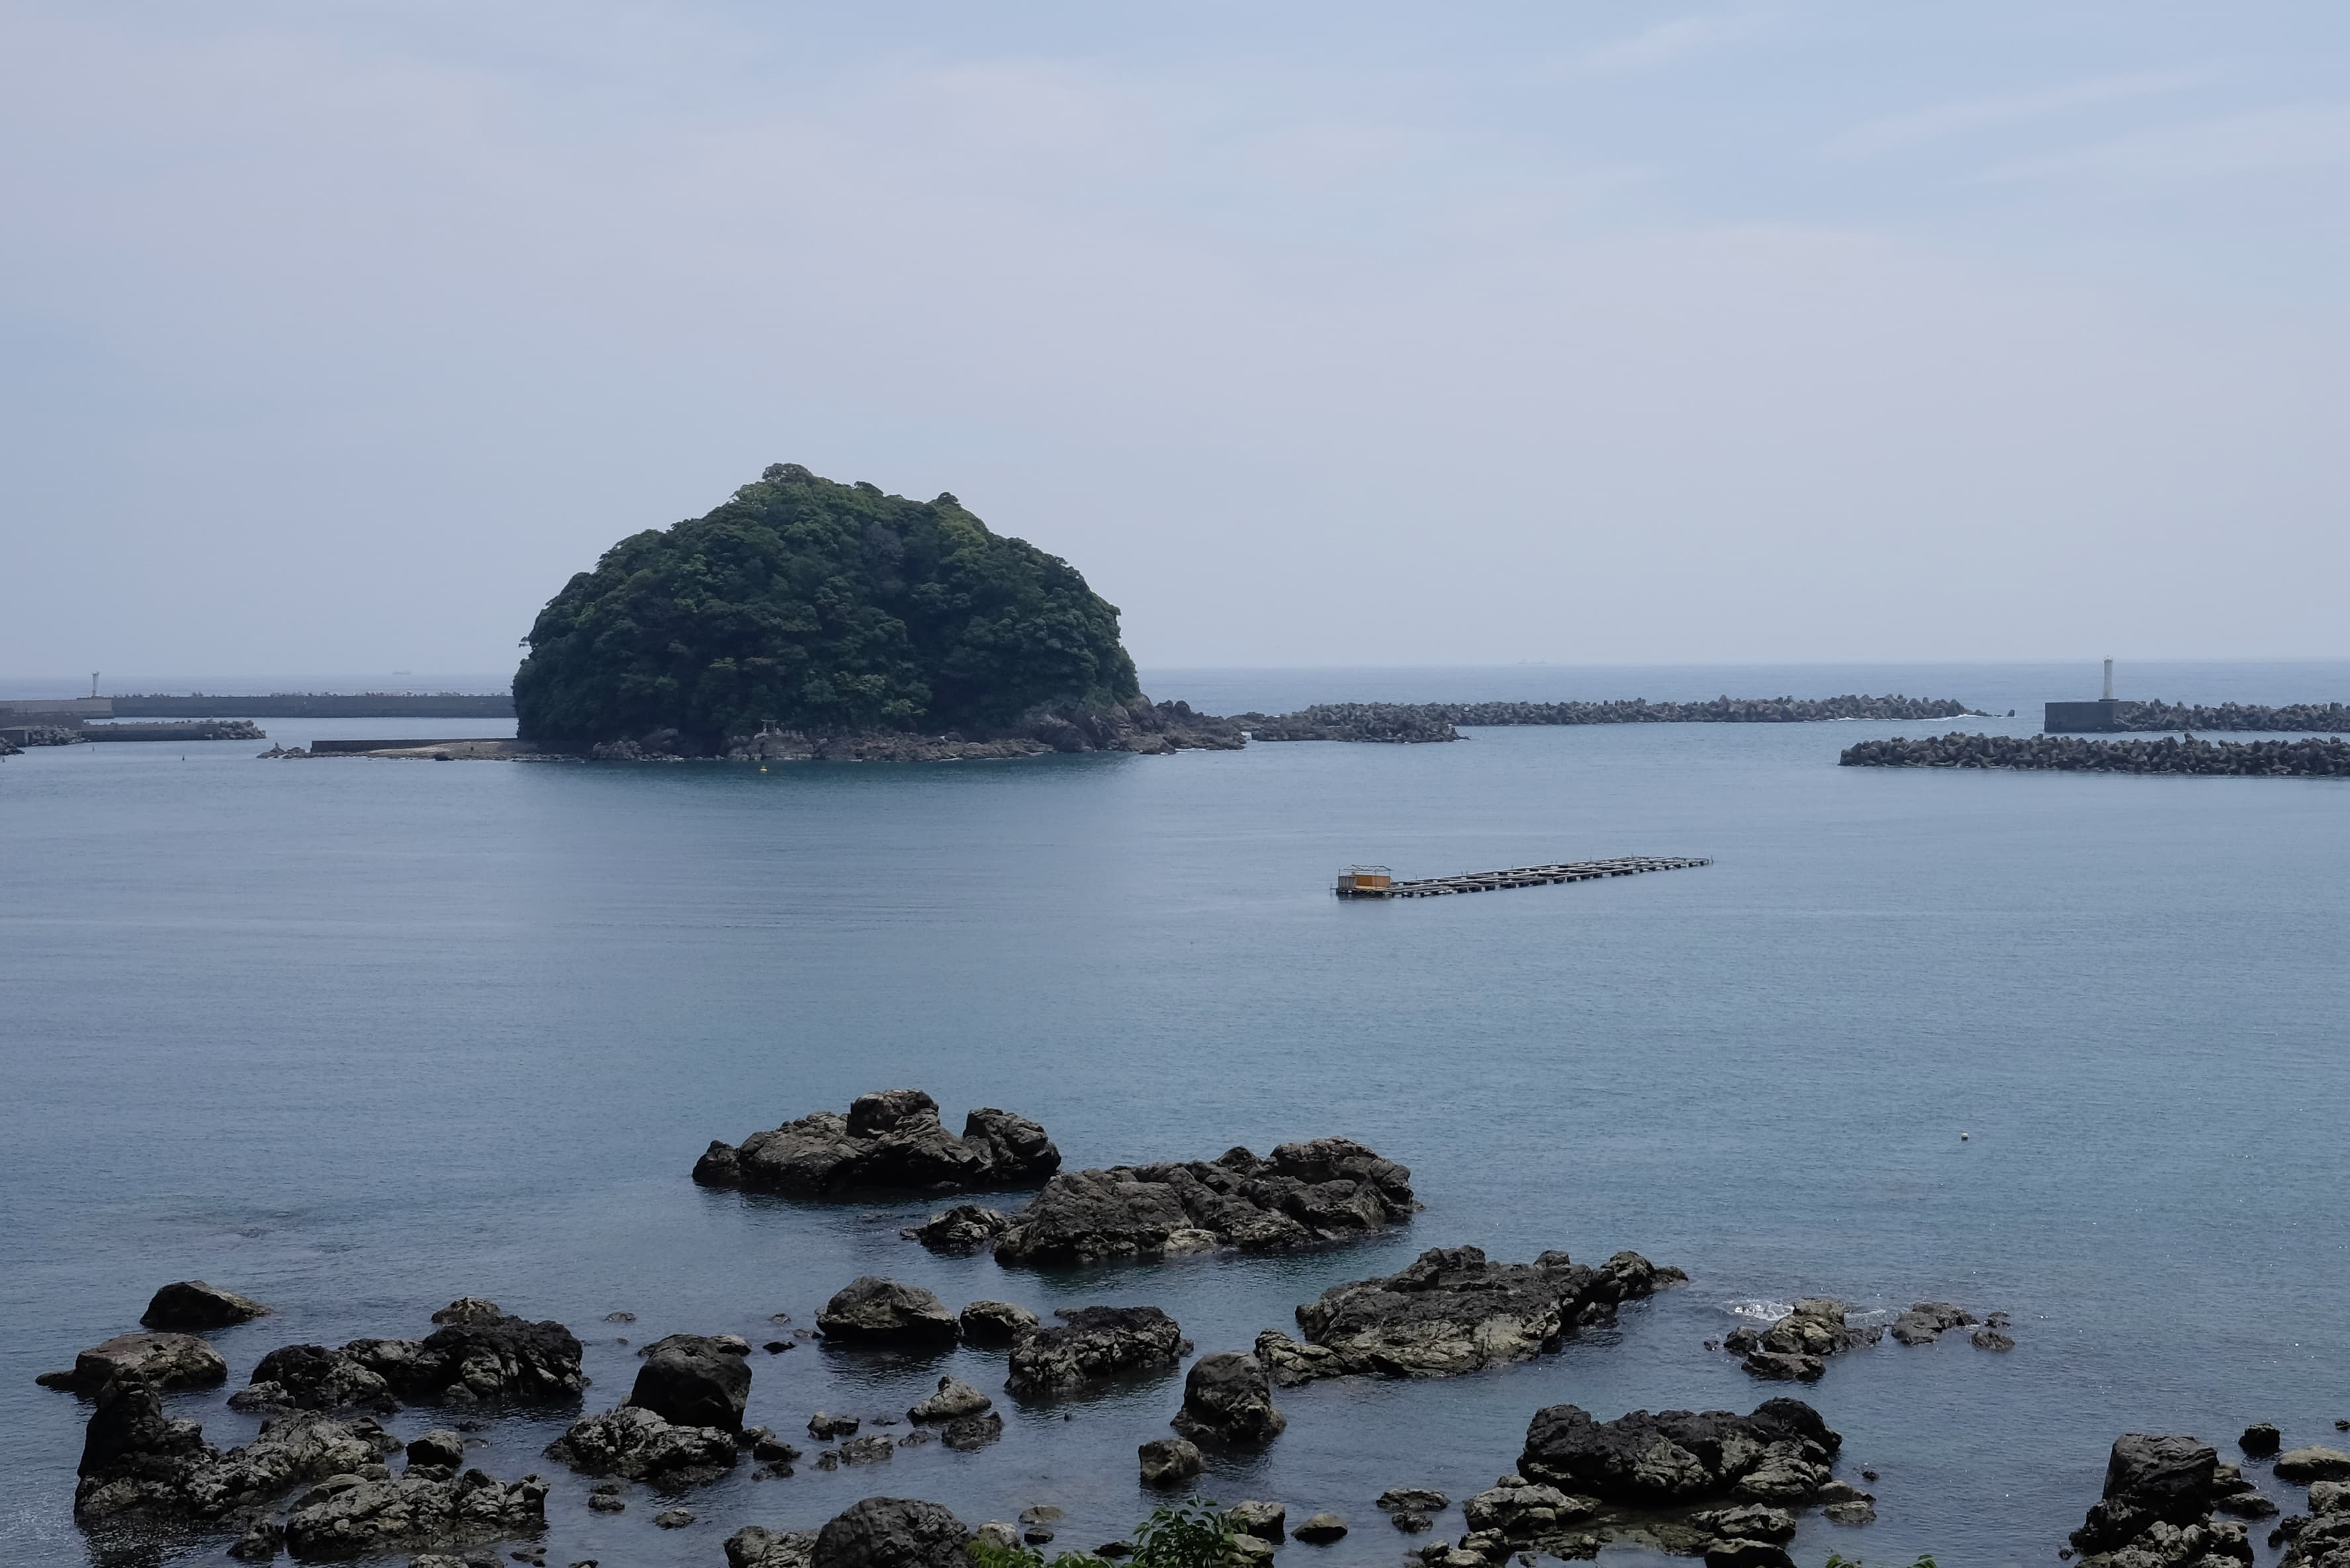 Tosa-shirahama Coast